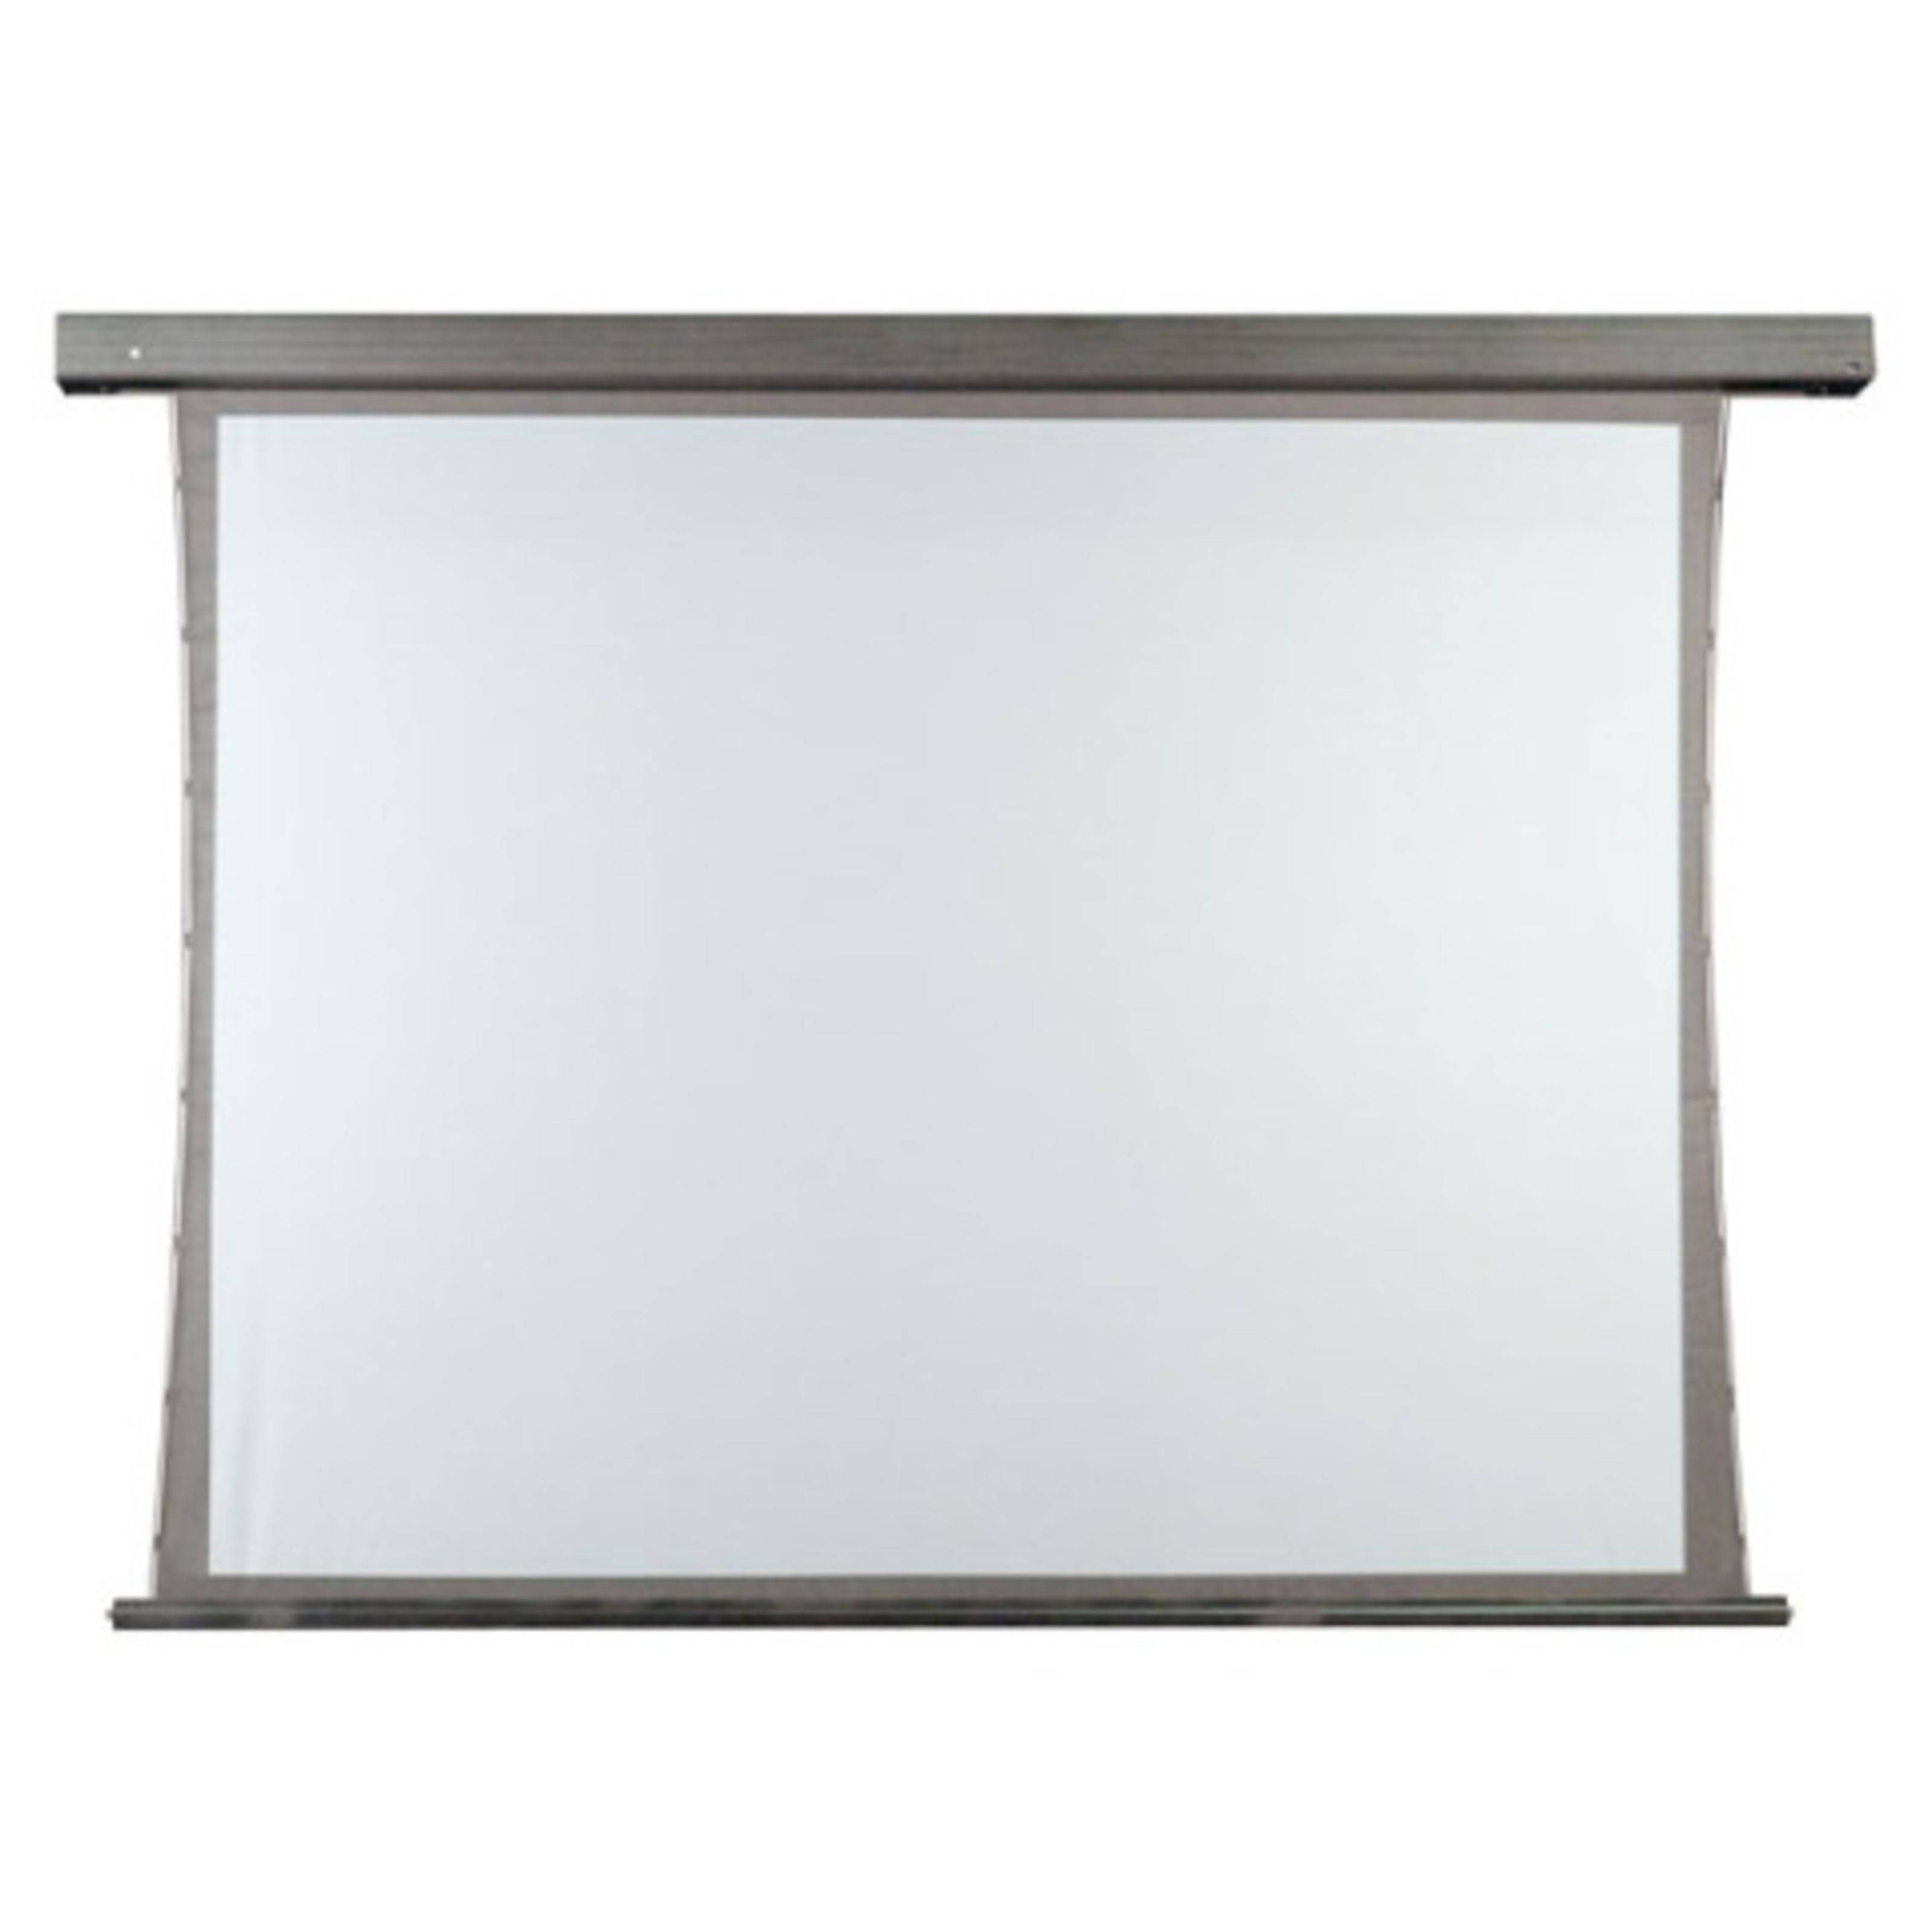 DMT Rear Projection Screen 180